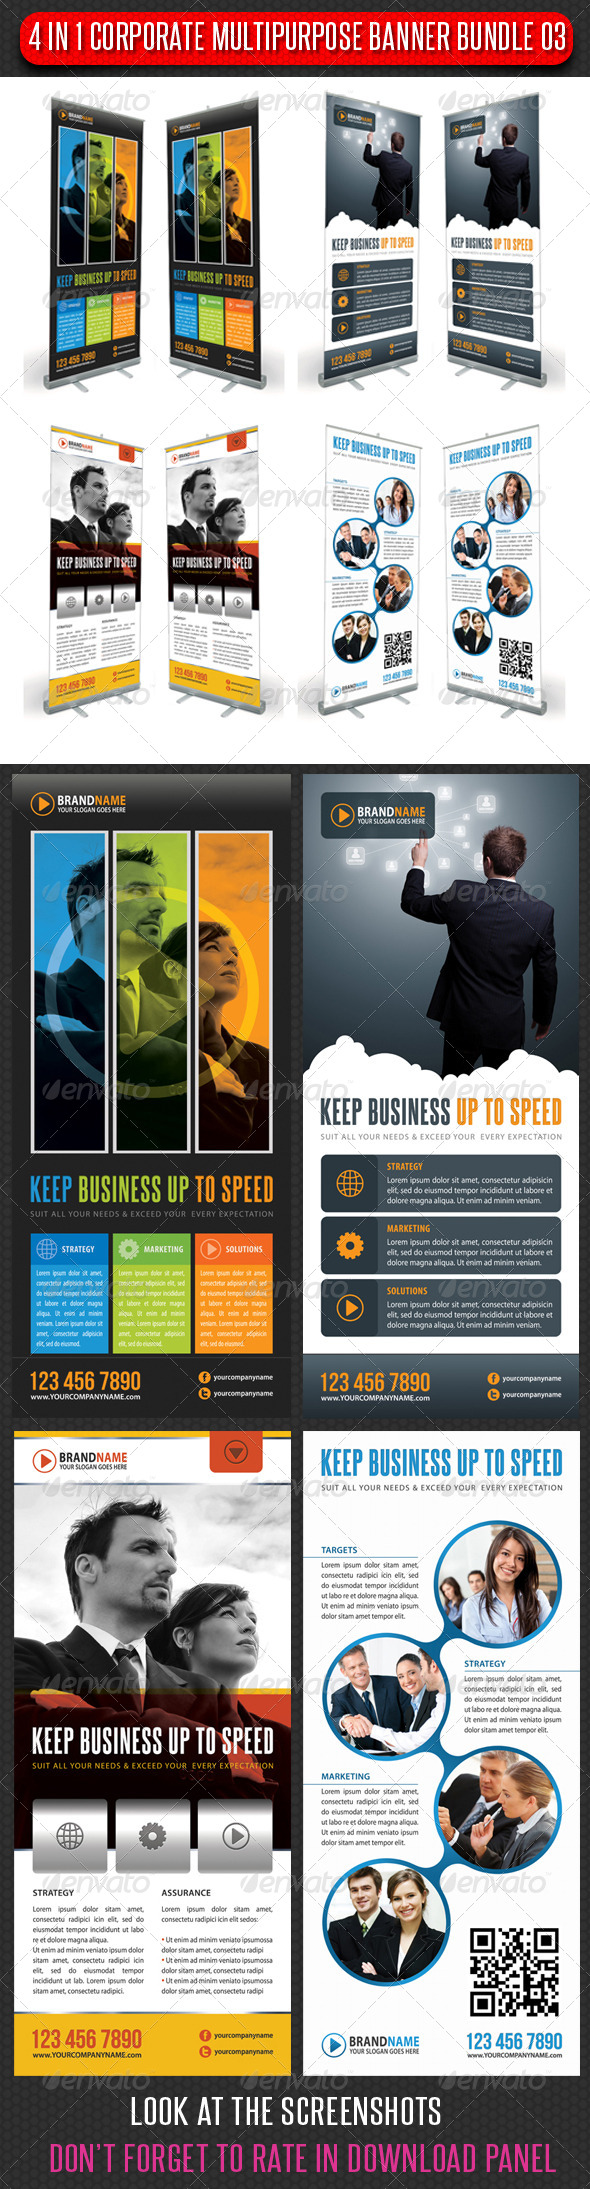 GraphicRiver 4 in 1 Corporate Multipurpose Banner Bundle 03 6465089